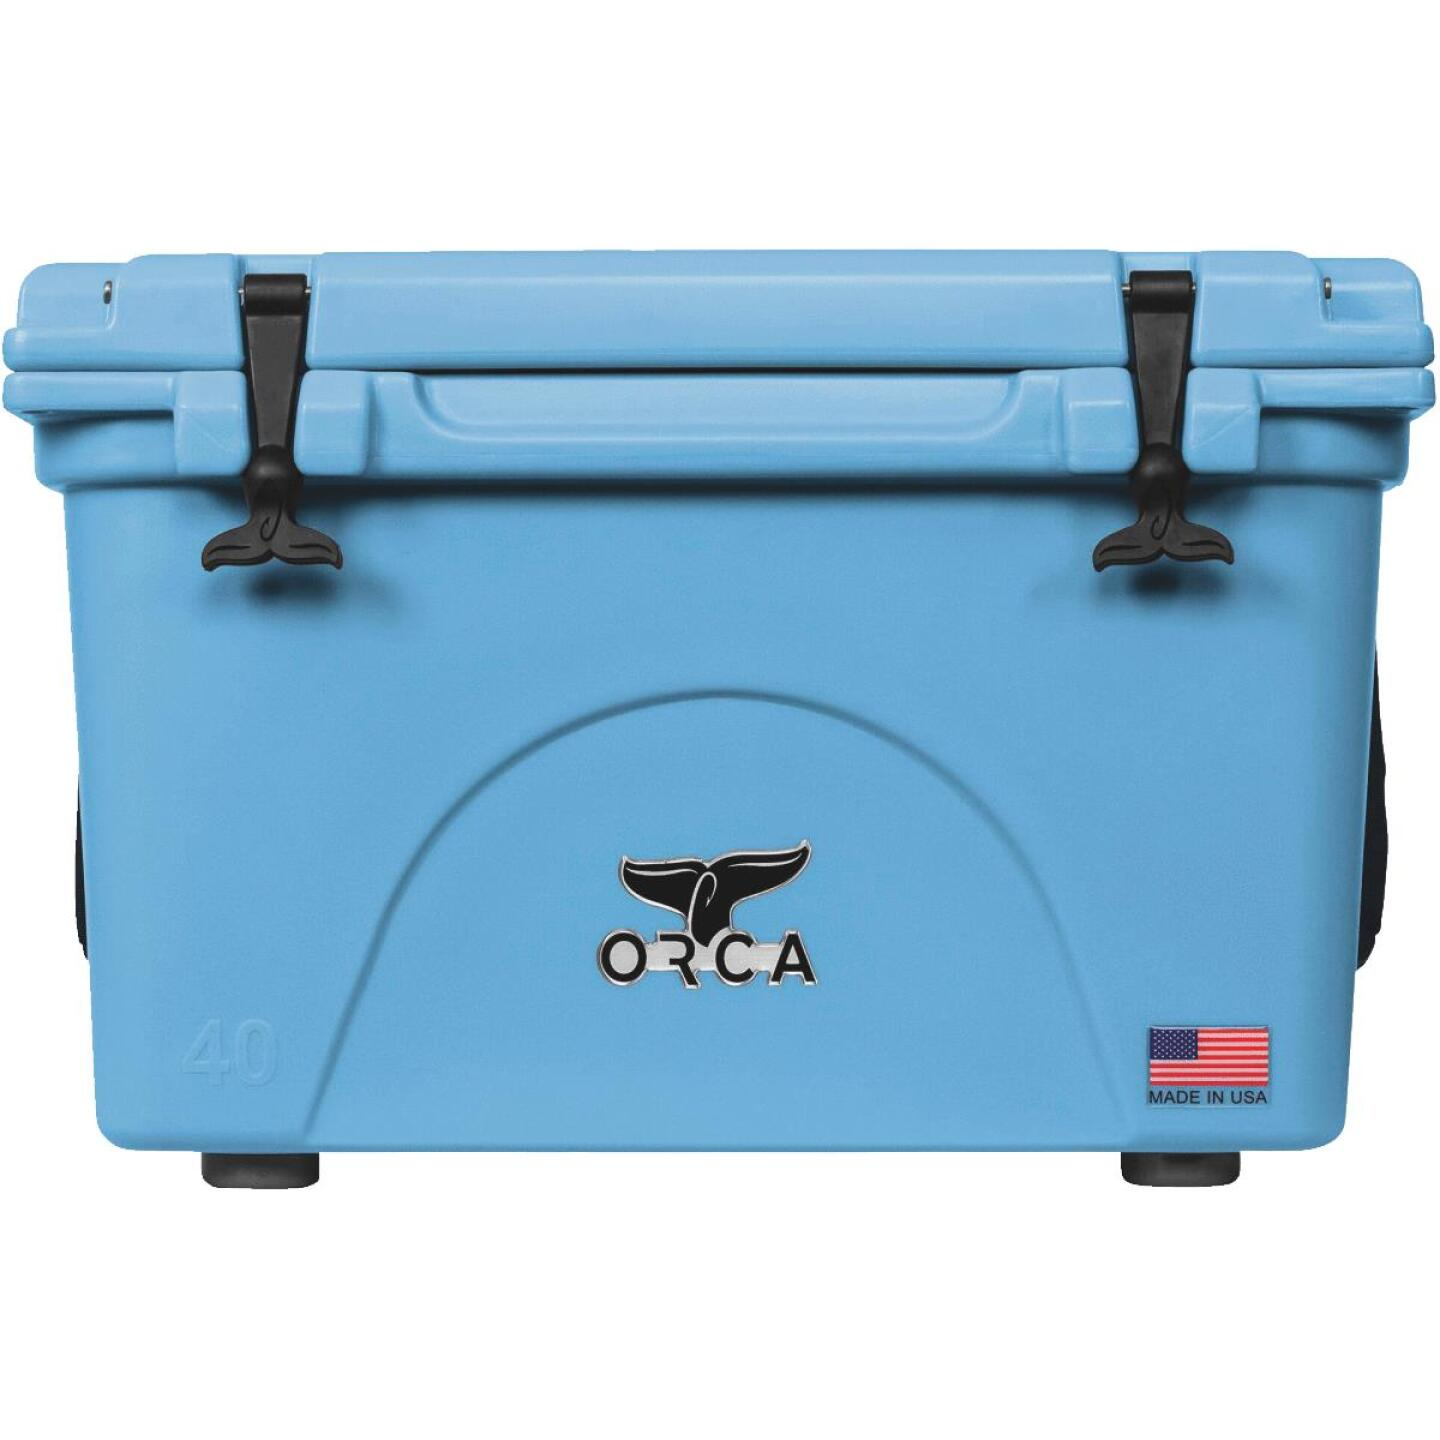 Orca 40 Qt. 48-Can Cooler, Light Blue Image 1